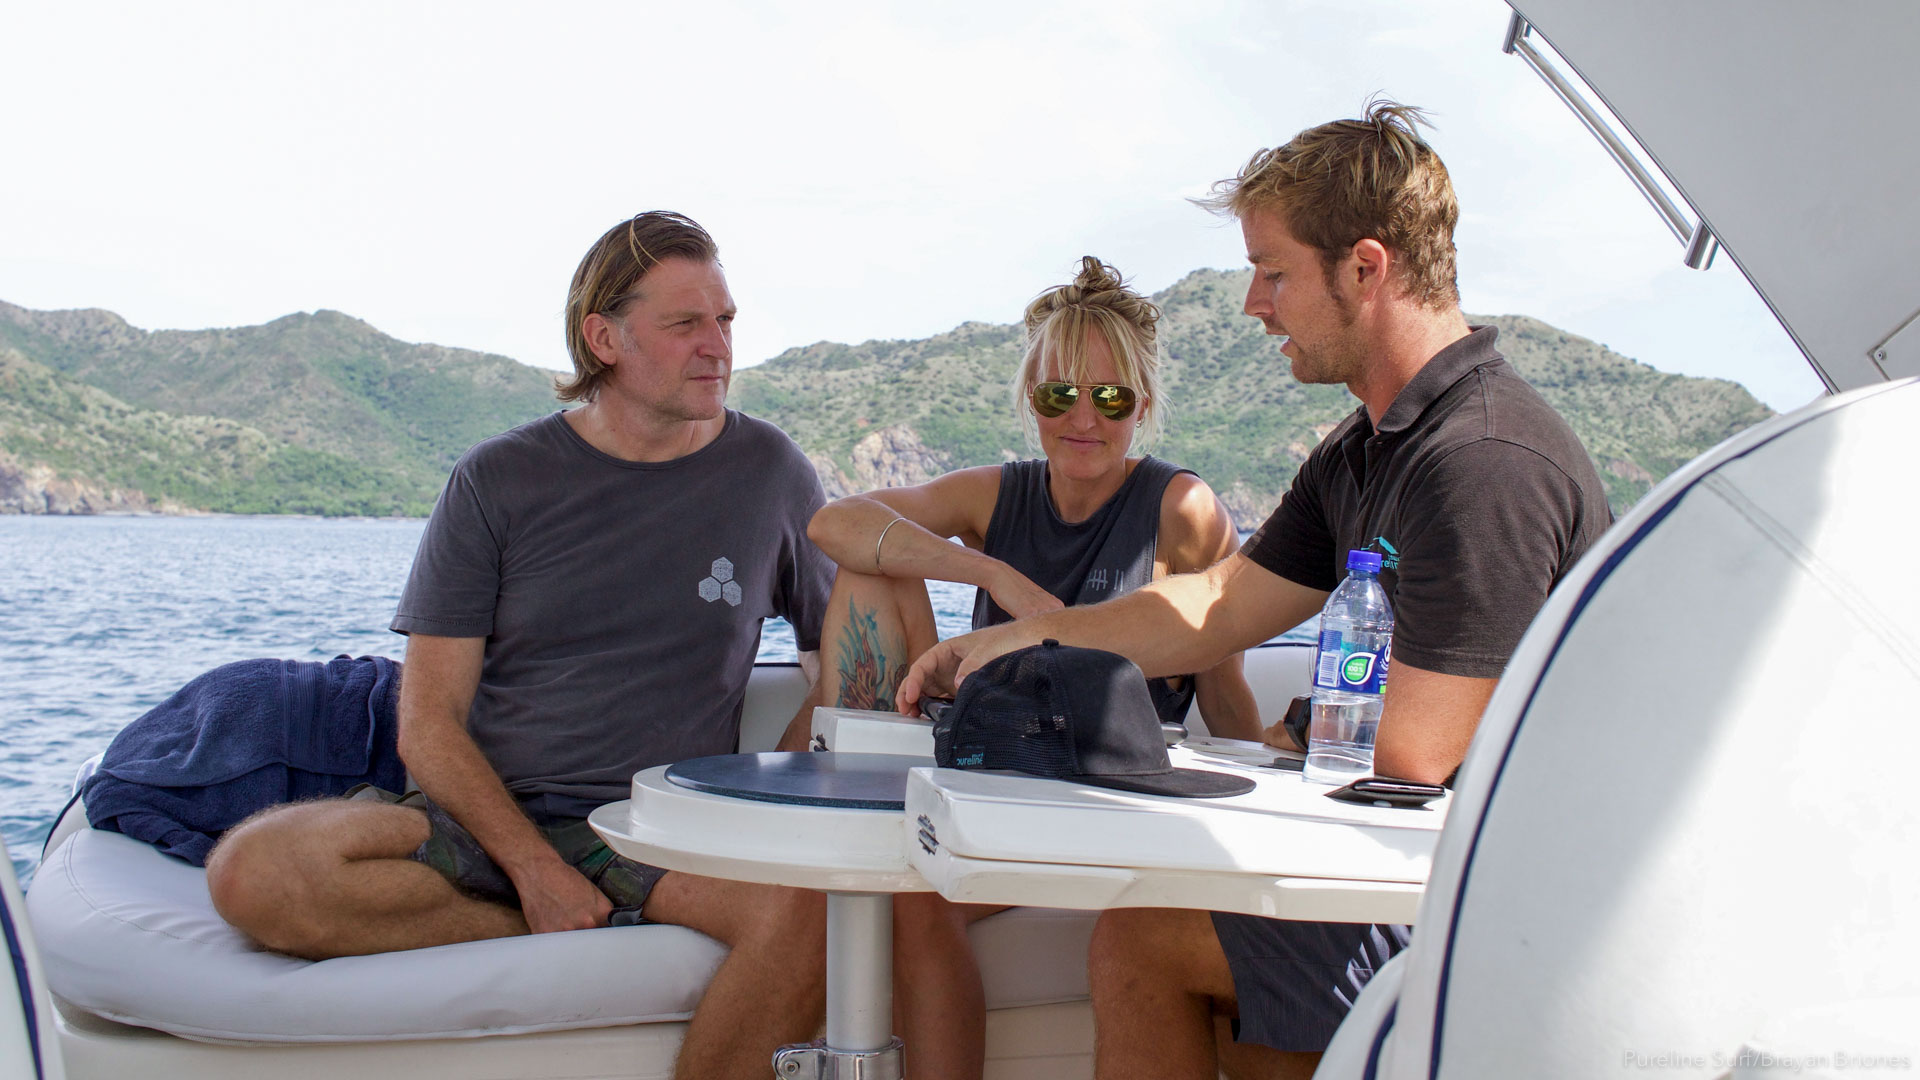 Pureline Surf's coach, Alex running through surf knowledge with two private clients on a private boat in Costa Rica.